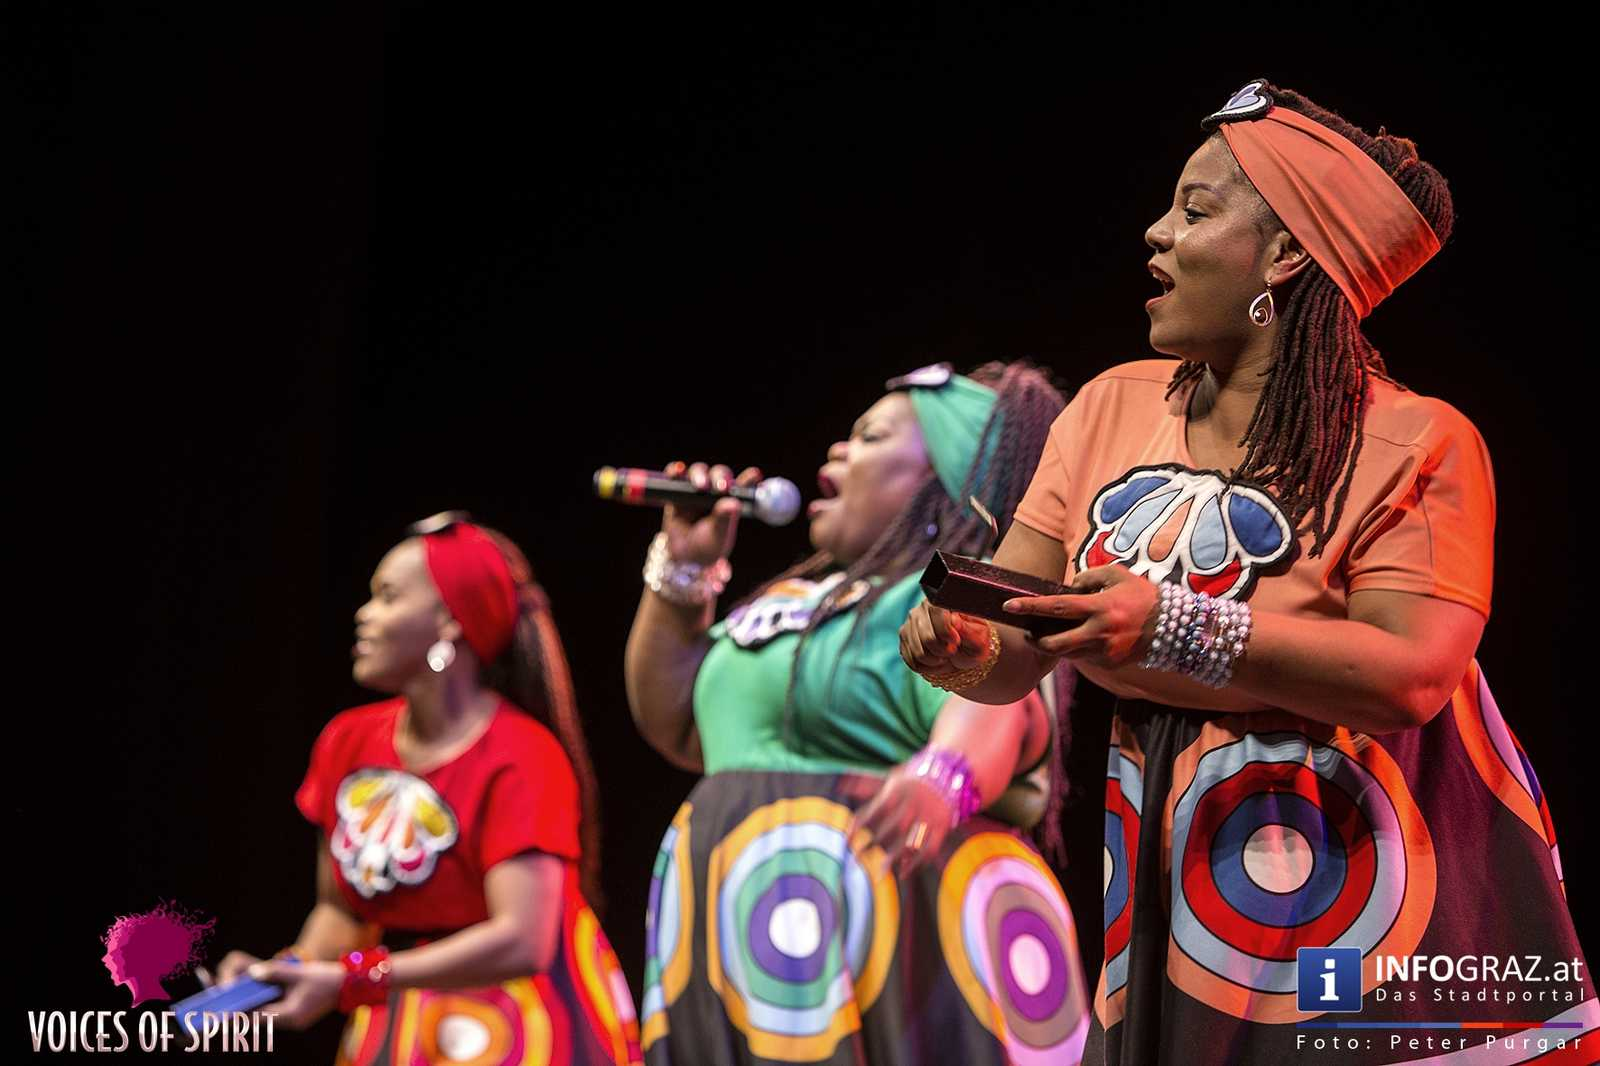 soweto gospel choir internationales chorfestival statdthalle graz voices of spirit eroeffnung festivals 2016 018